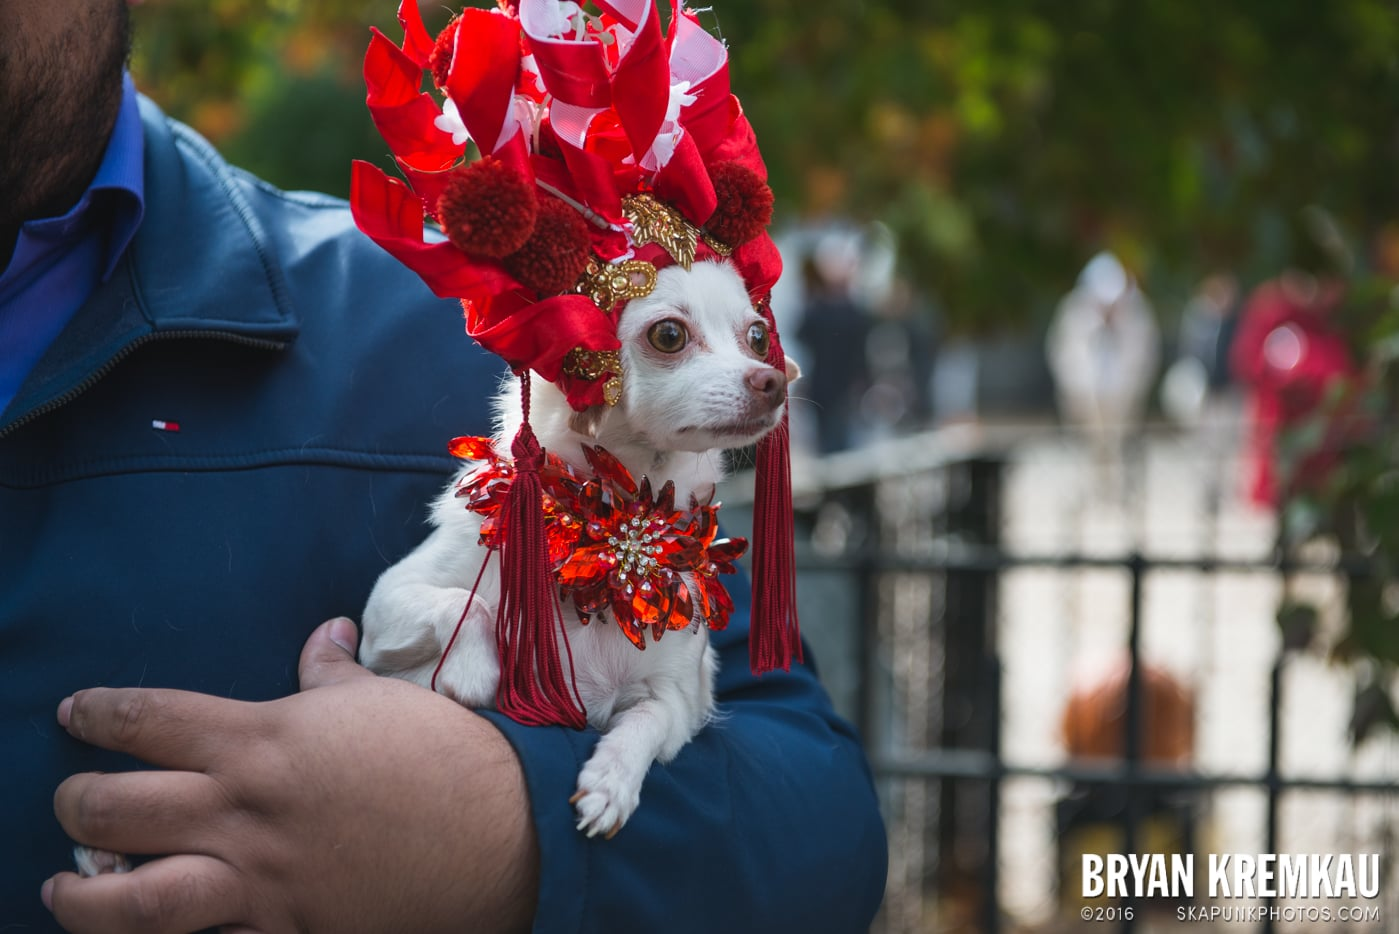 Tompkins Square Halloween Dog Parade 2015 @ Tompkins Square Park, NYC – 10.24.15 (73)